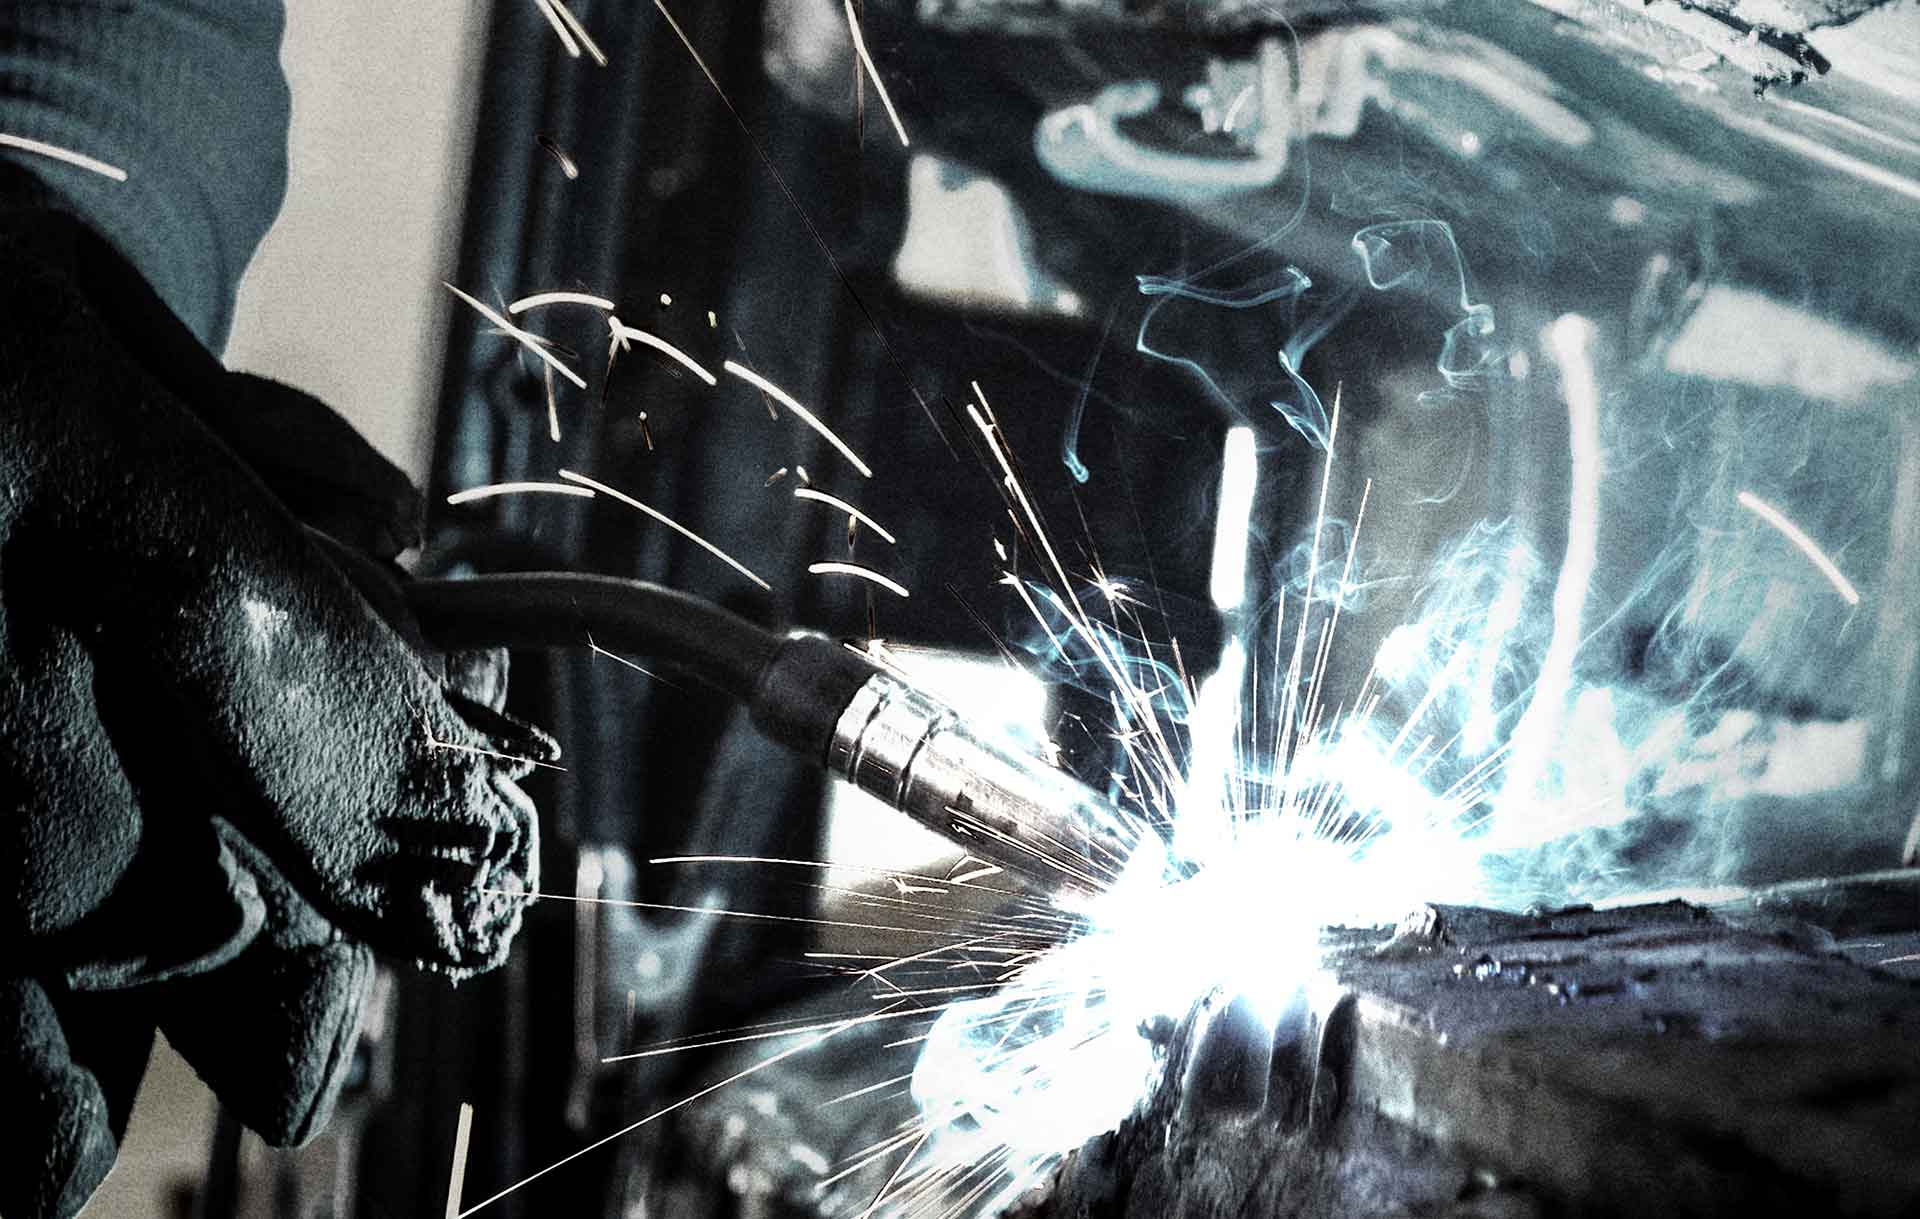 """<h3>Weld on<br>Rock on</h3><p><p> Laikas is an industry expert and a reliable partner. <br> We provide smart and comprehensive shelving, rental, <br> support, maintenance and monitoring services.</p> <a class=""""front-btn button"""" href=""""/en/laikas-en/""""> Always ready </a></p>"""